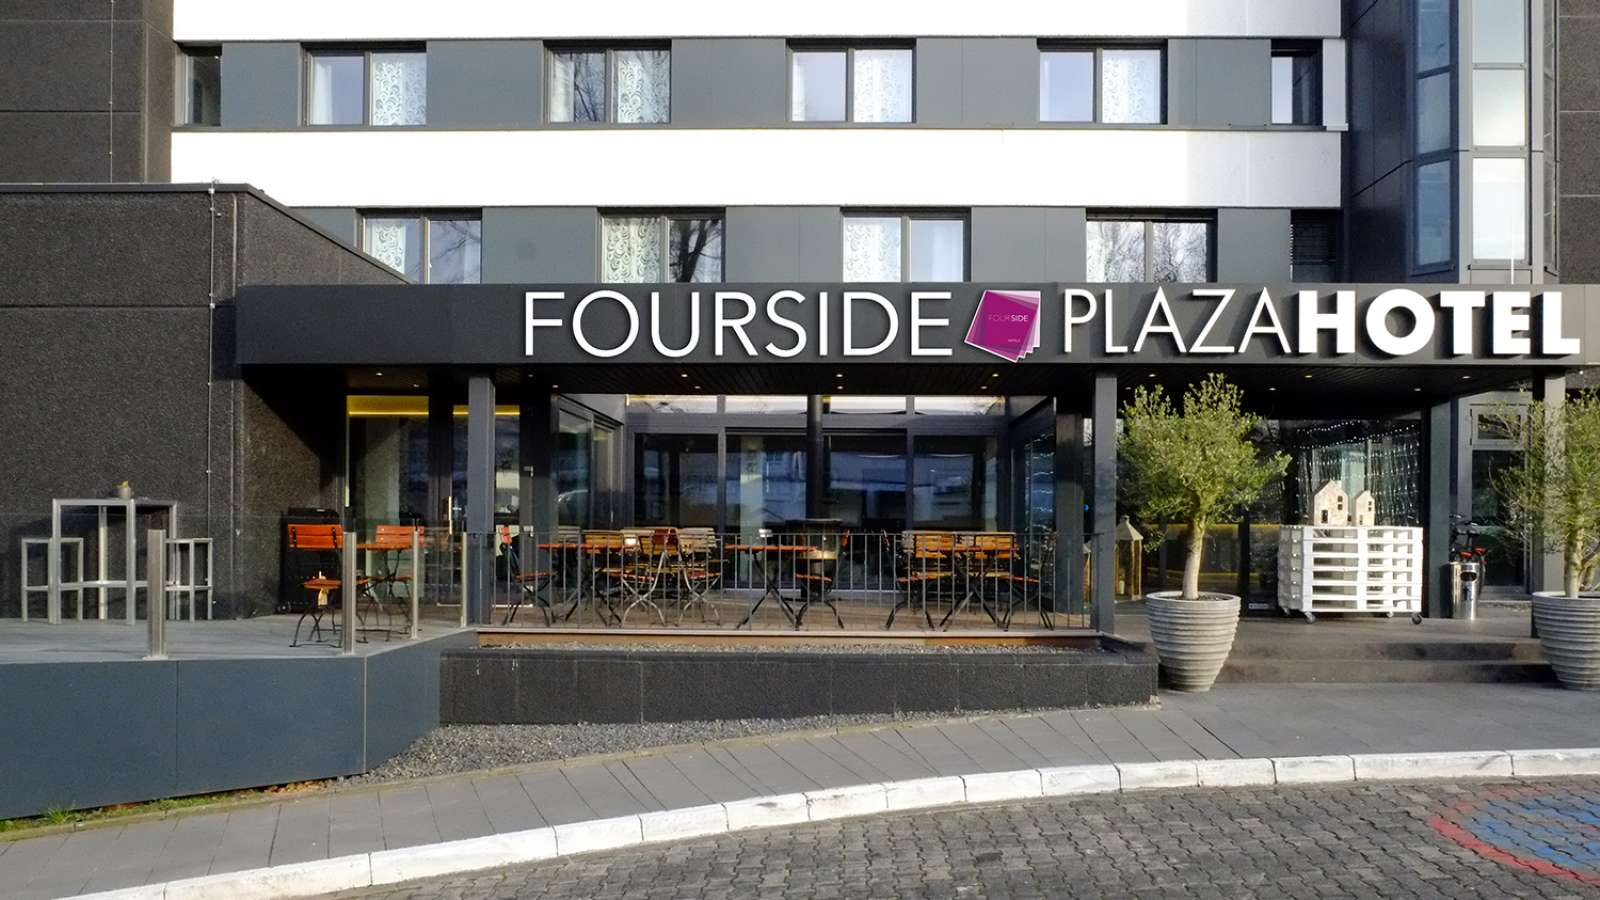 New Fourside Hotel in Trier